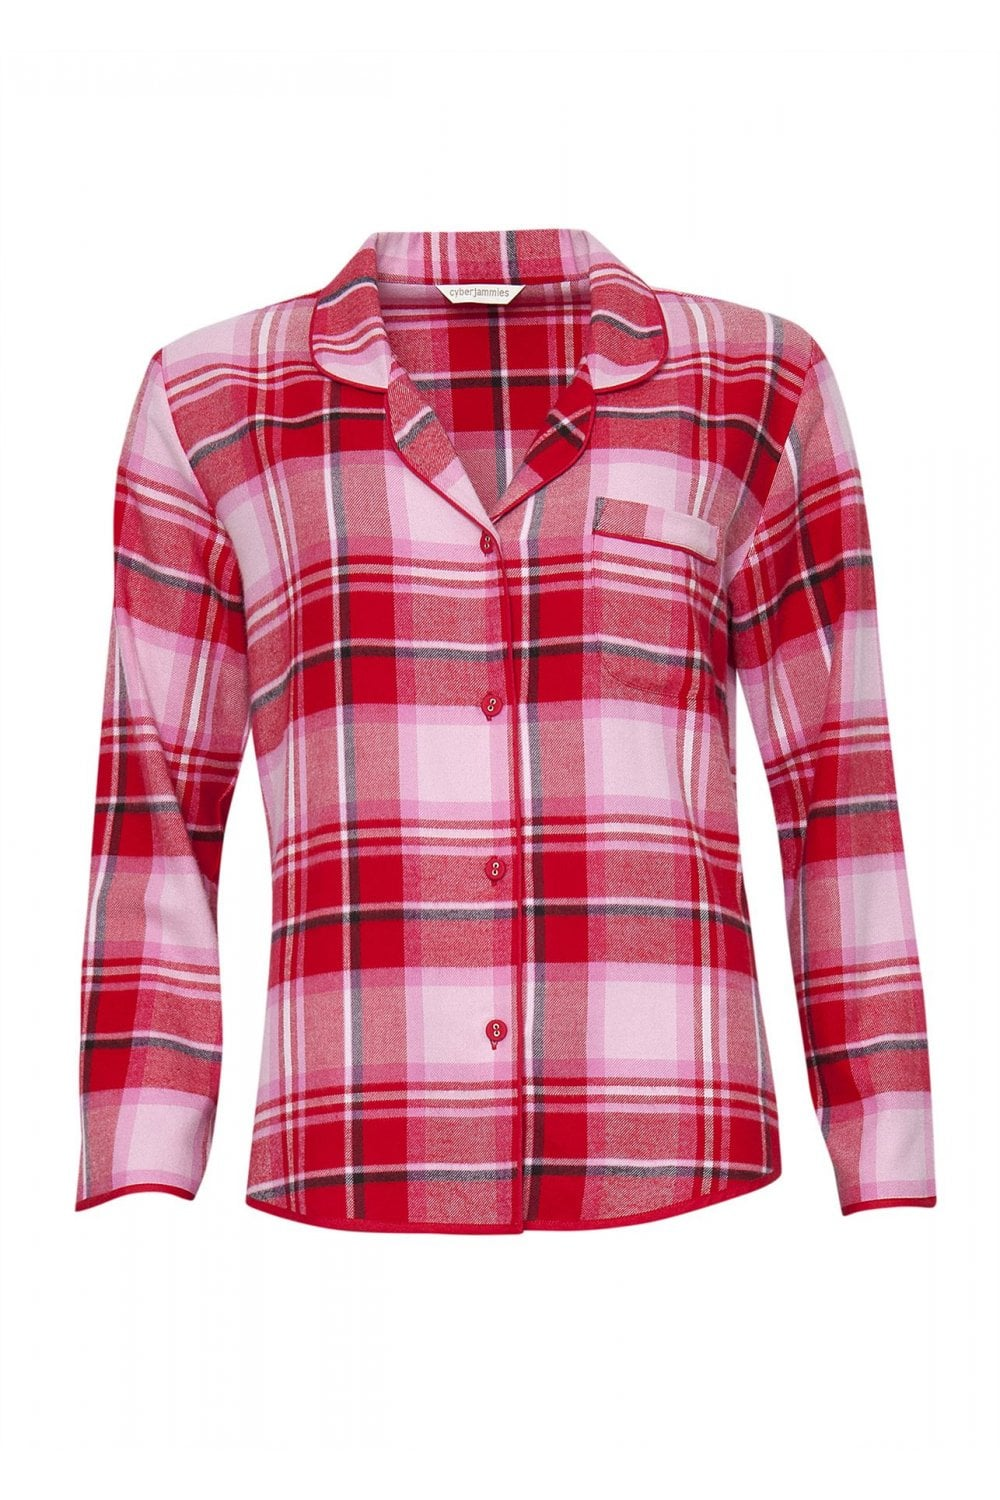 a44229eb9 Cyberjammies Womens Erin Brushed Check Pyjama Top - Red/Pink ...